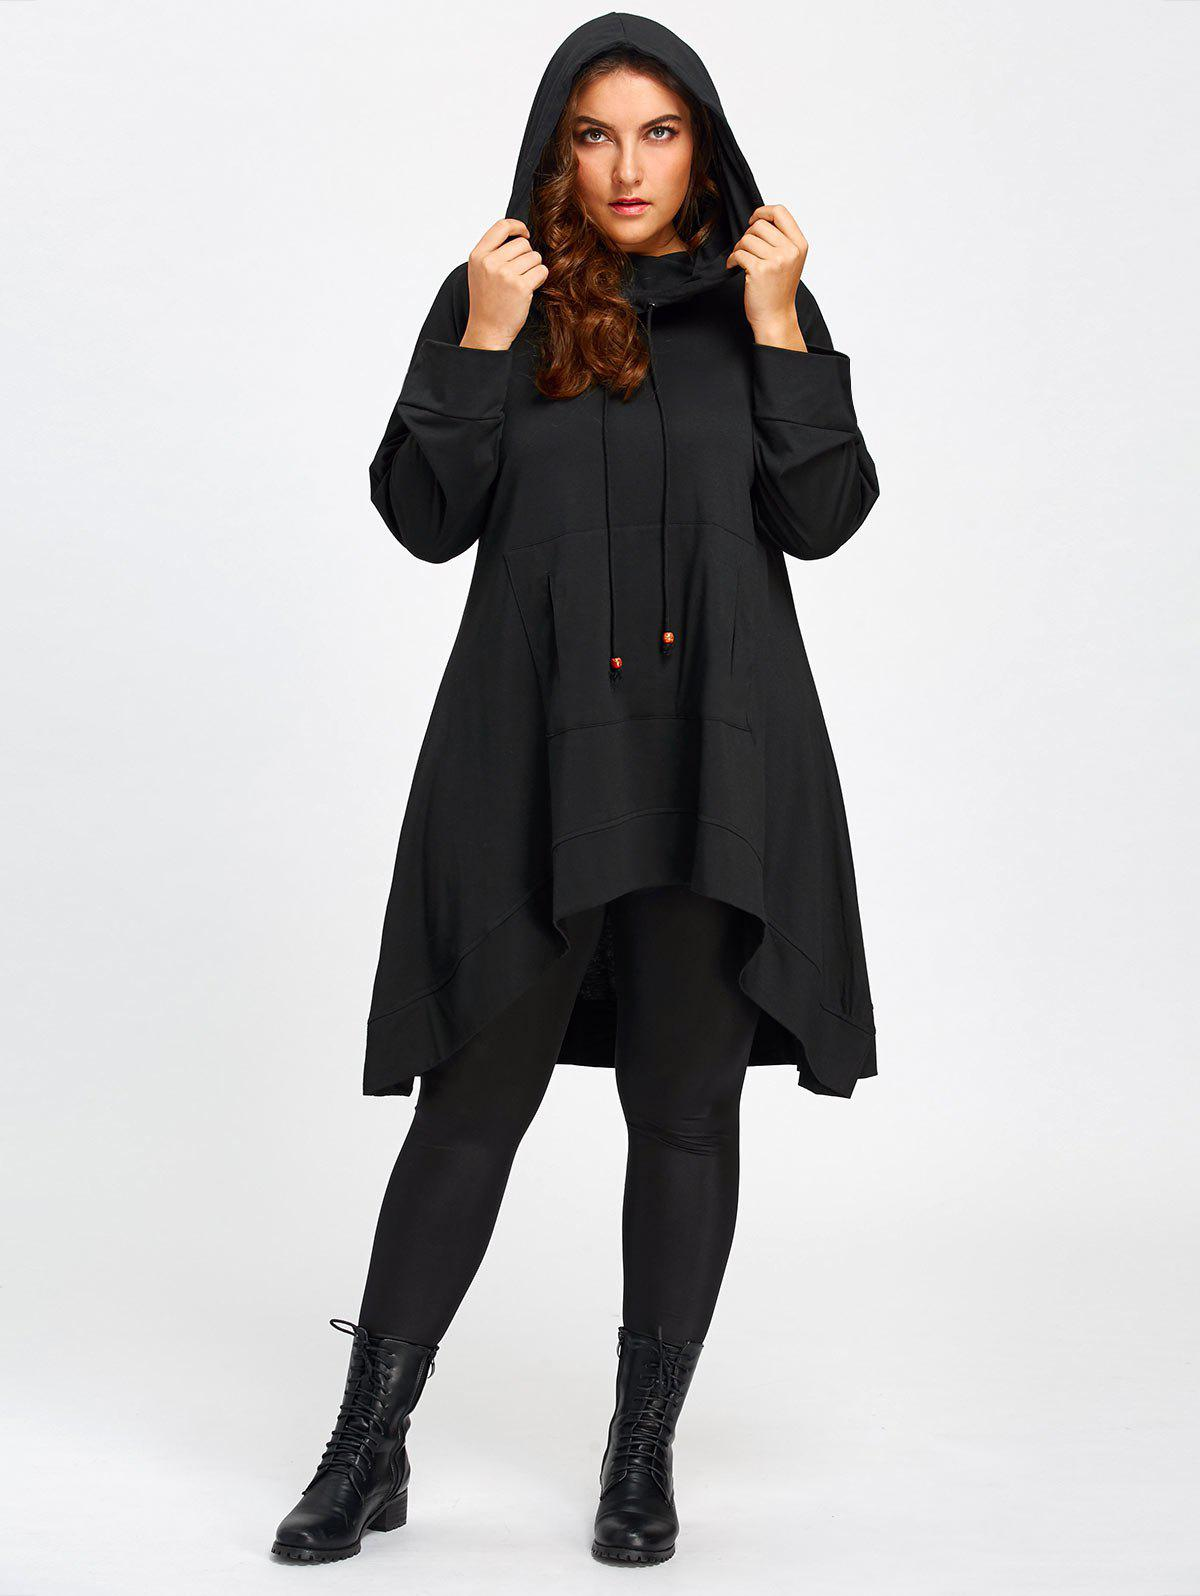 Heaps Collar Plus Size High Low Long HoodieWOMEN<br><br>Size: 3XL; Color: BLACK; Material: Polyester; Shirt Length: Long; Sleeve Length: Full; Style: Casual; Pattern Style: Solid; Embellishment: Front Pocket; Season: Fall,Spring; Weight: 0.6100kg; Package Contents: 1 x Hoodie;